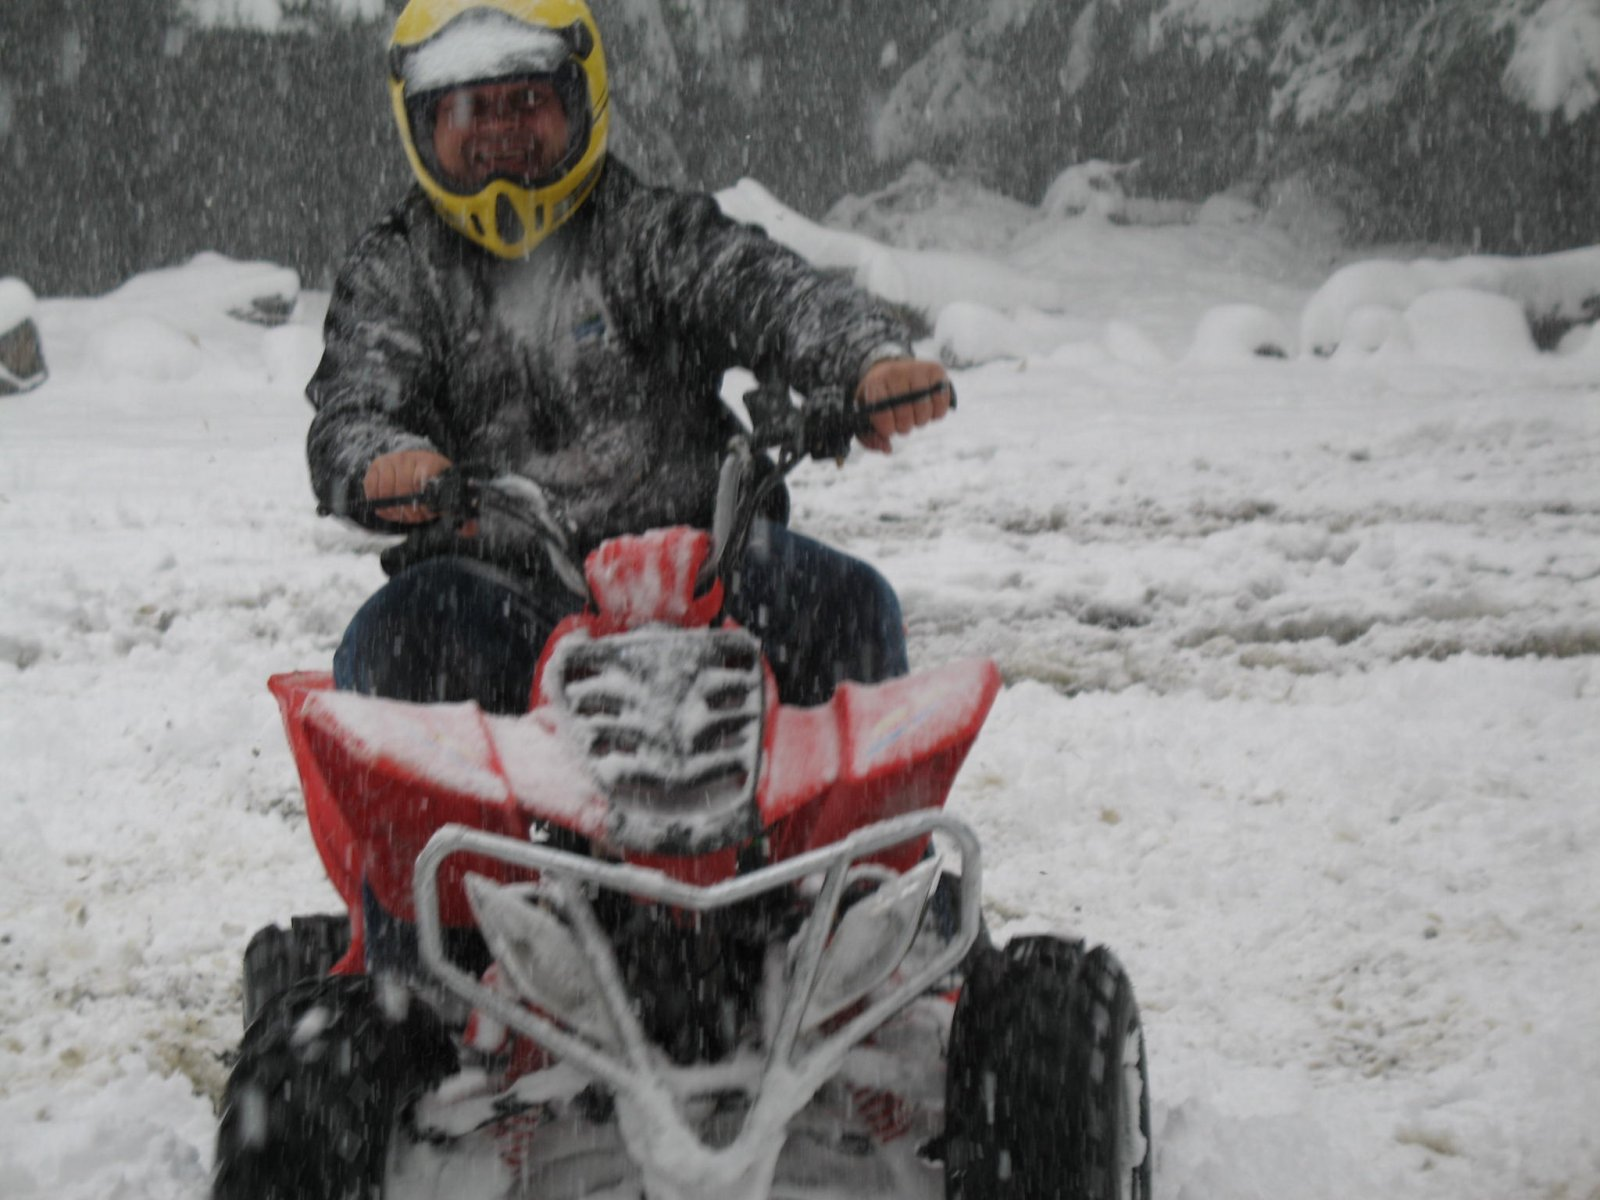 GREAT SNOW RIDING